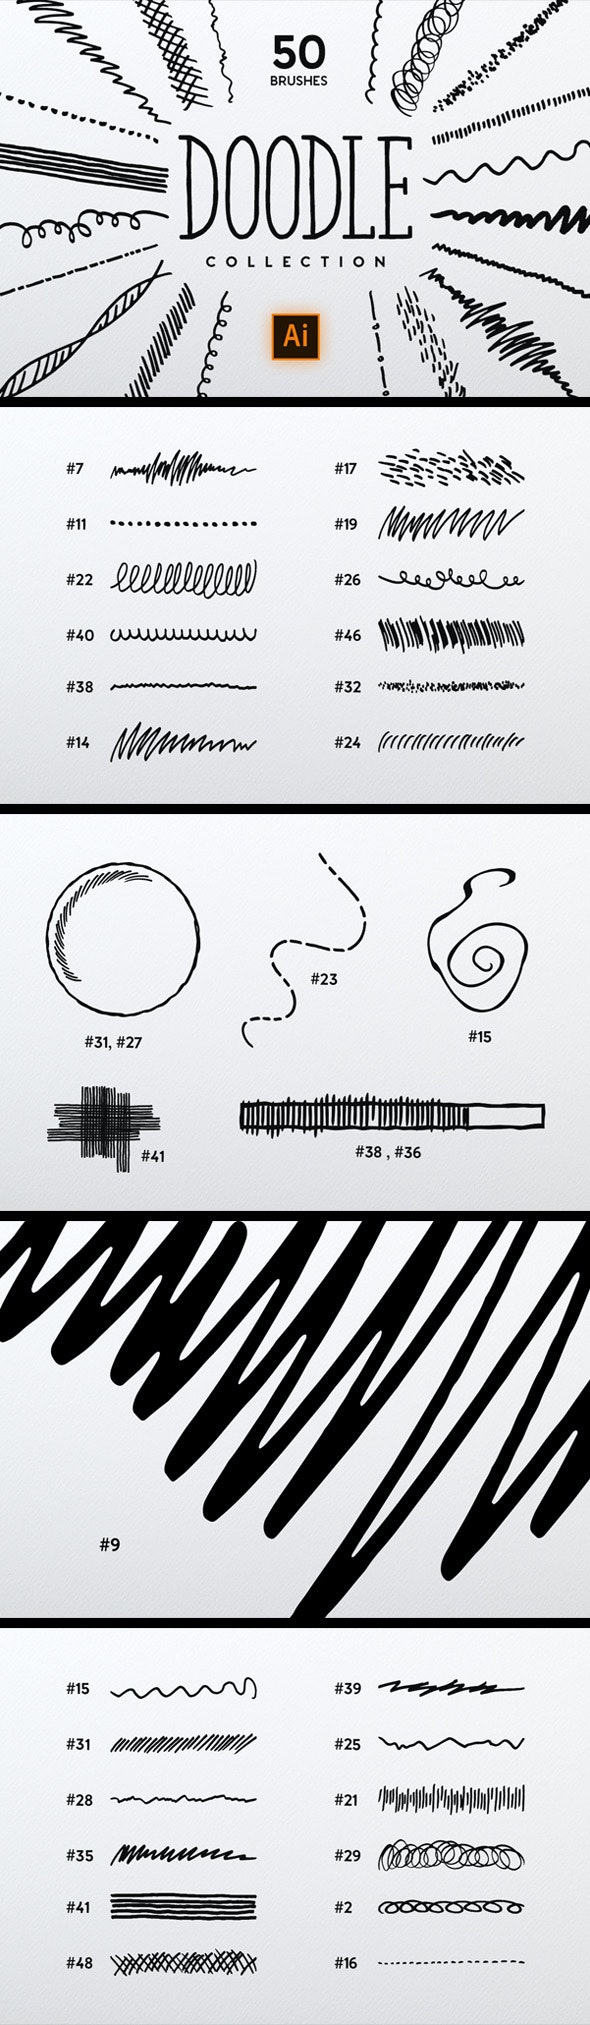 Doodle Brush Collection - Brushes Illustrator